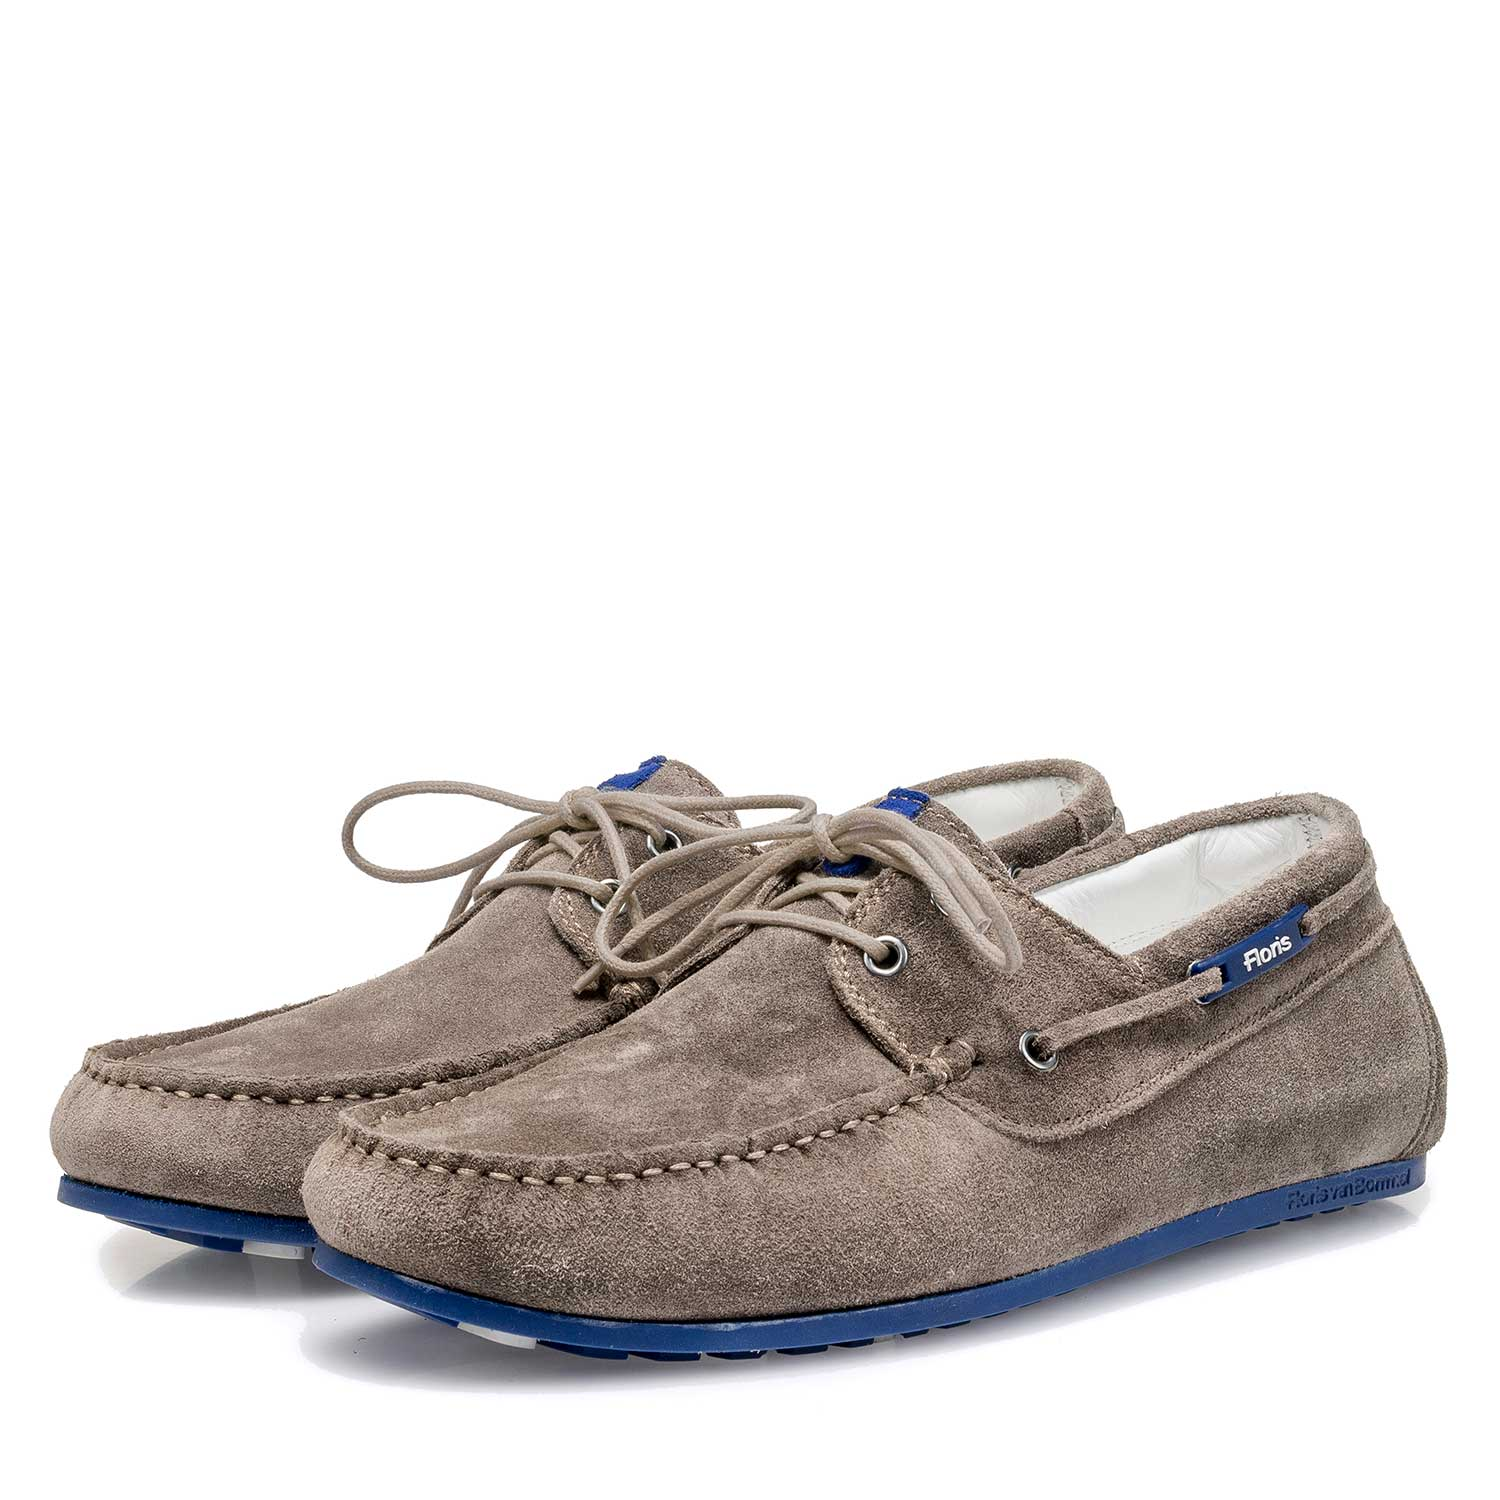 15035/07 - Taupe-coloured slightly buffed suede leather sailing shoe